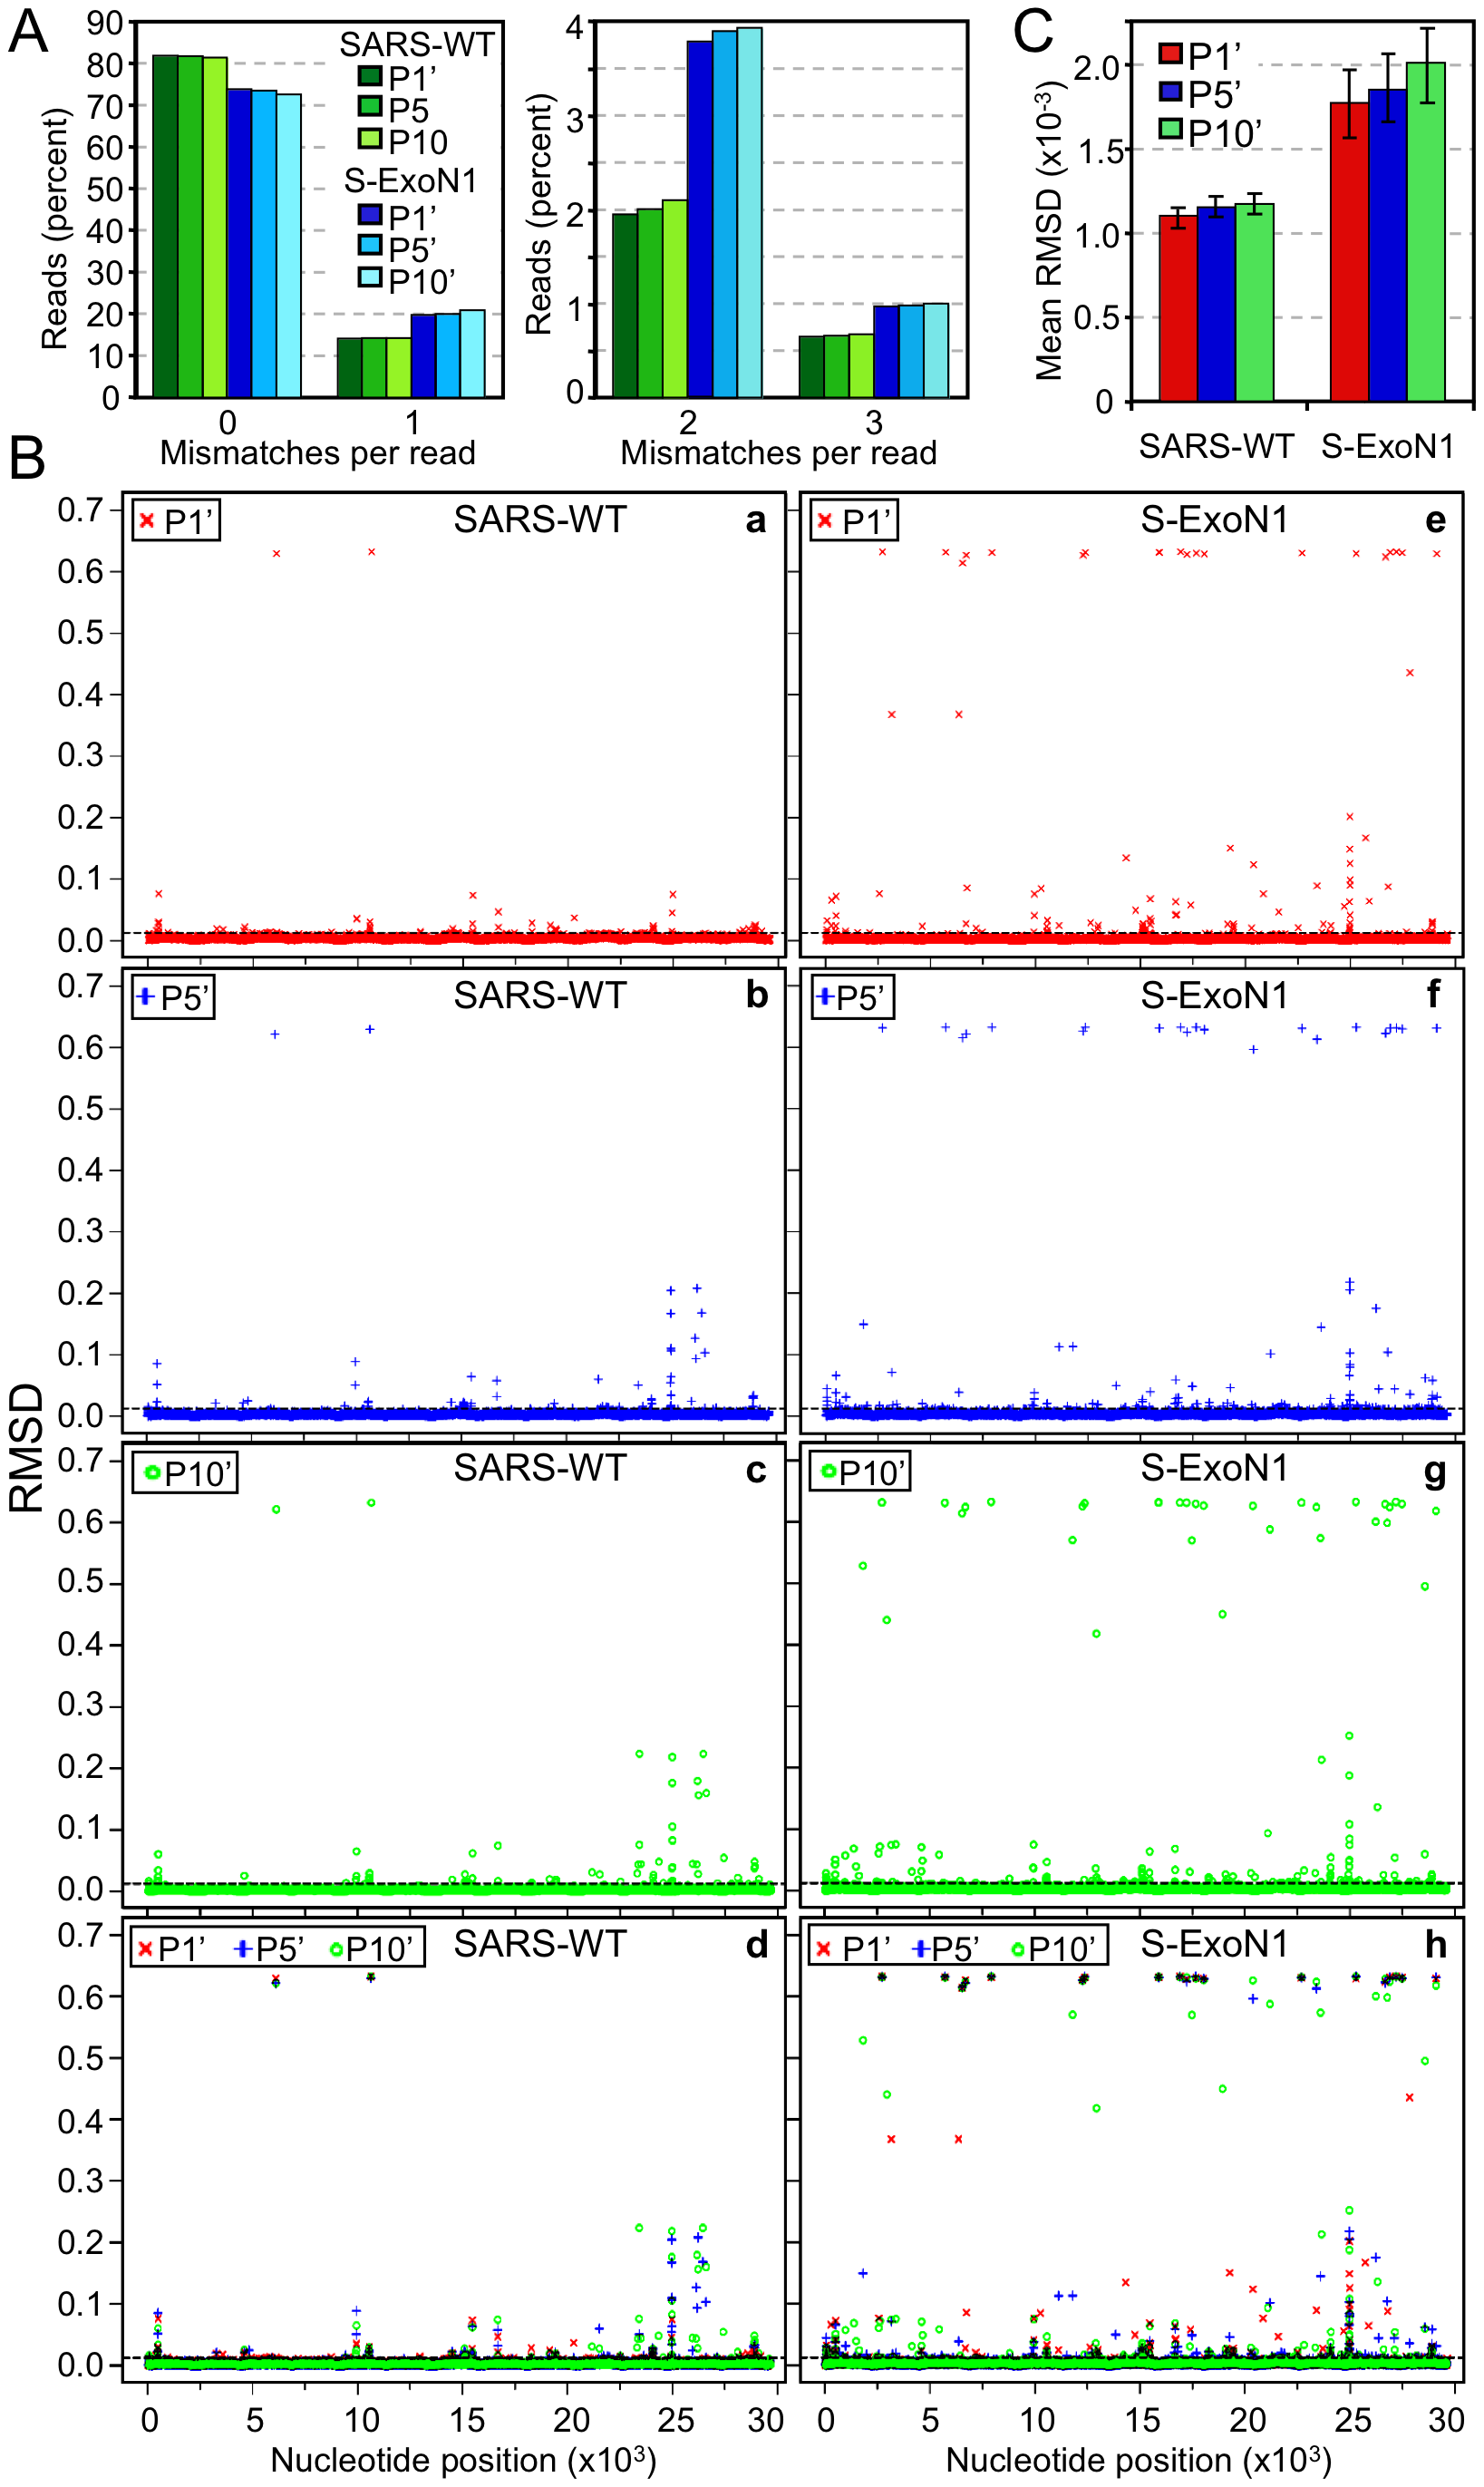 Genetic diversity of SARS-WT and S-ExoN1 from P1', P5', and P10'.